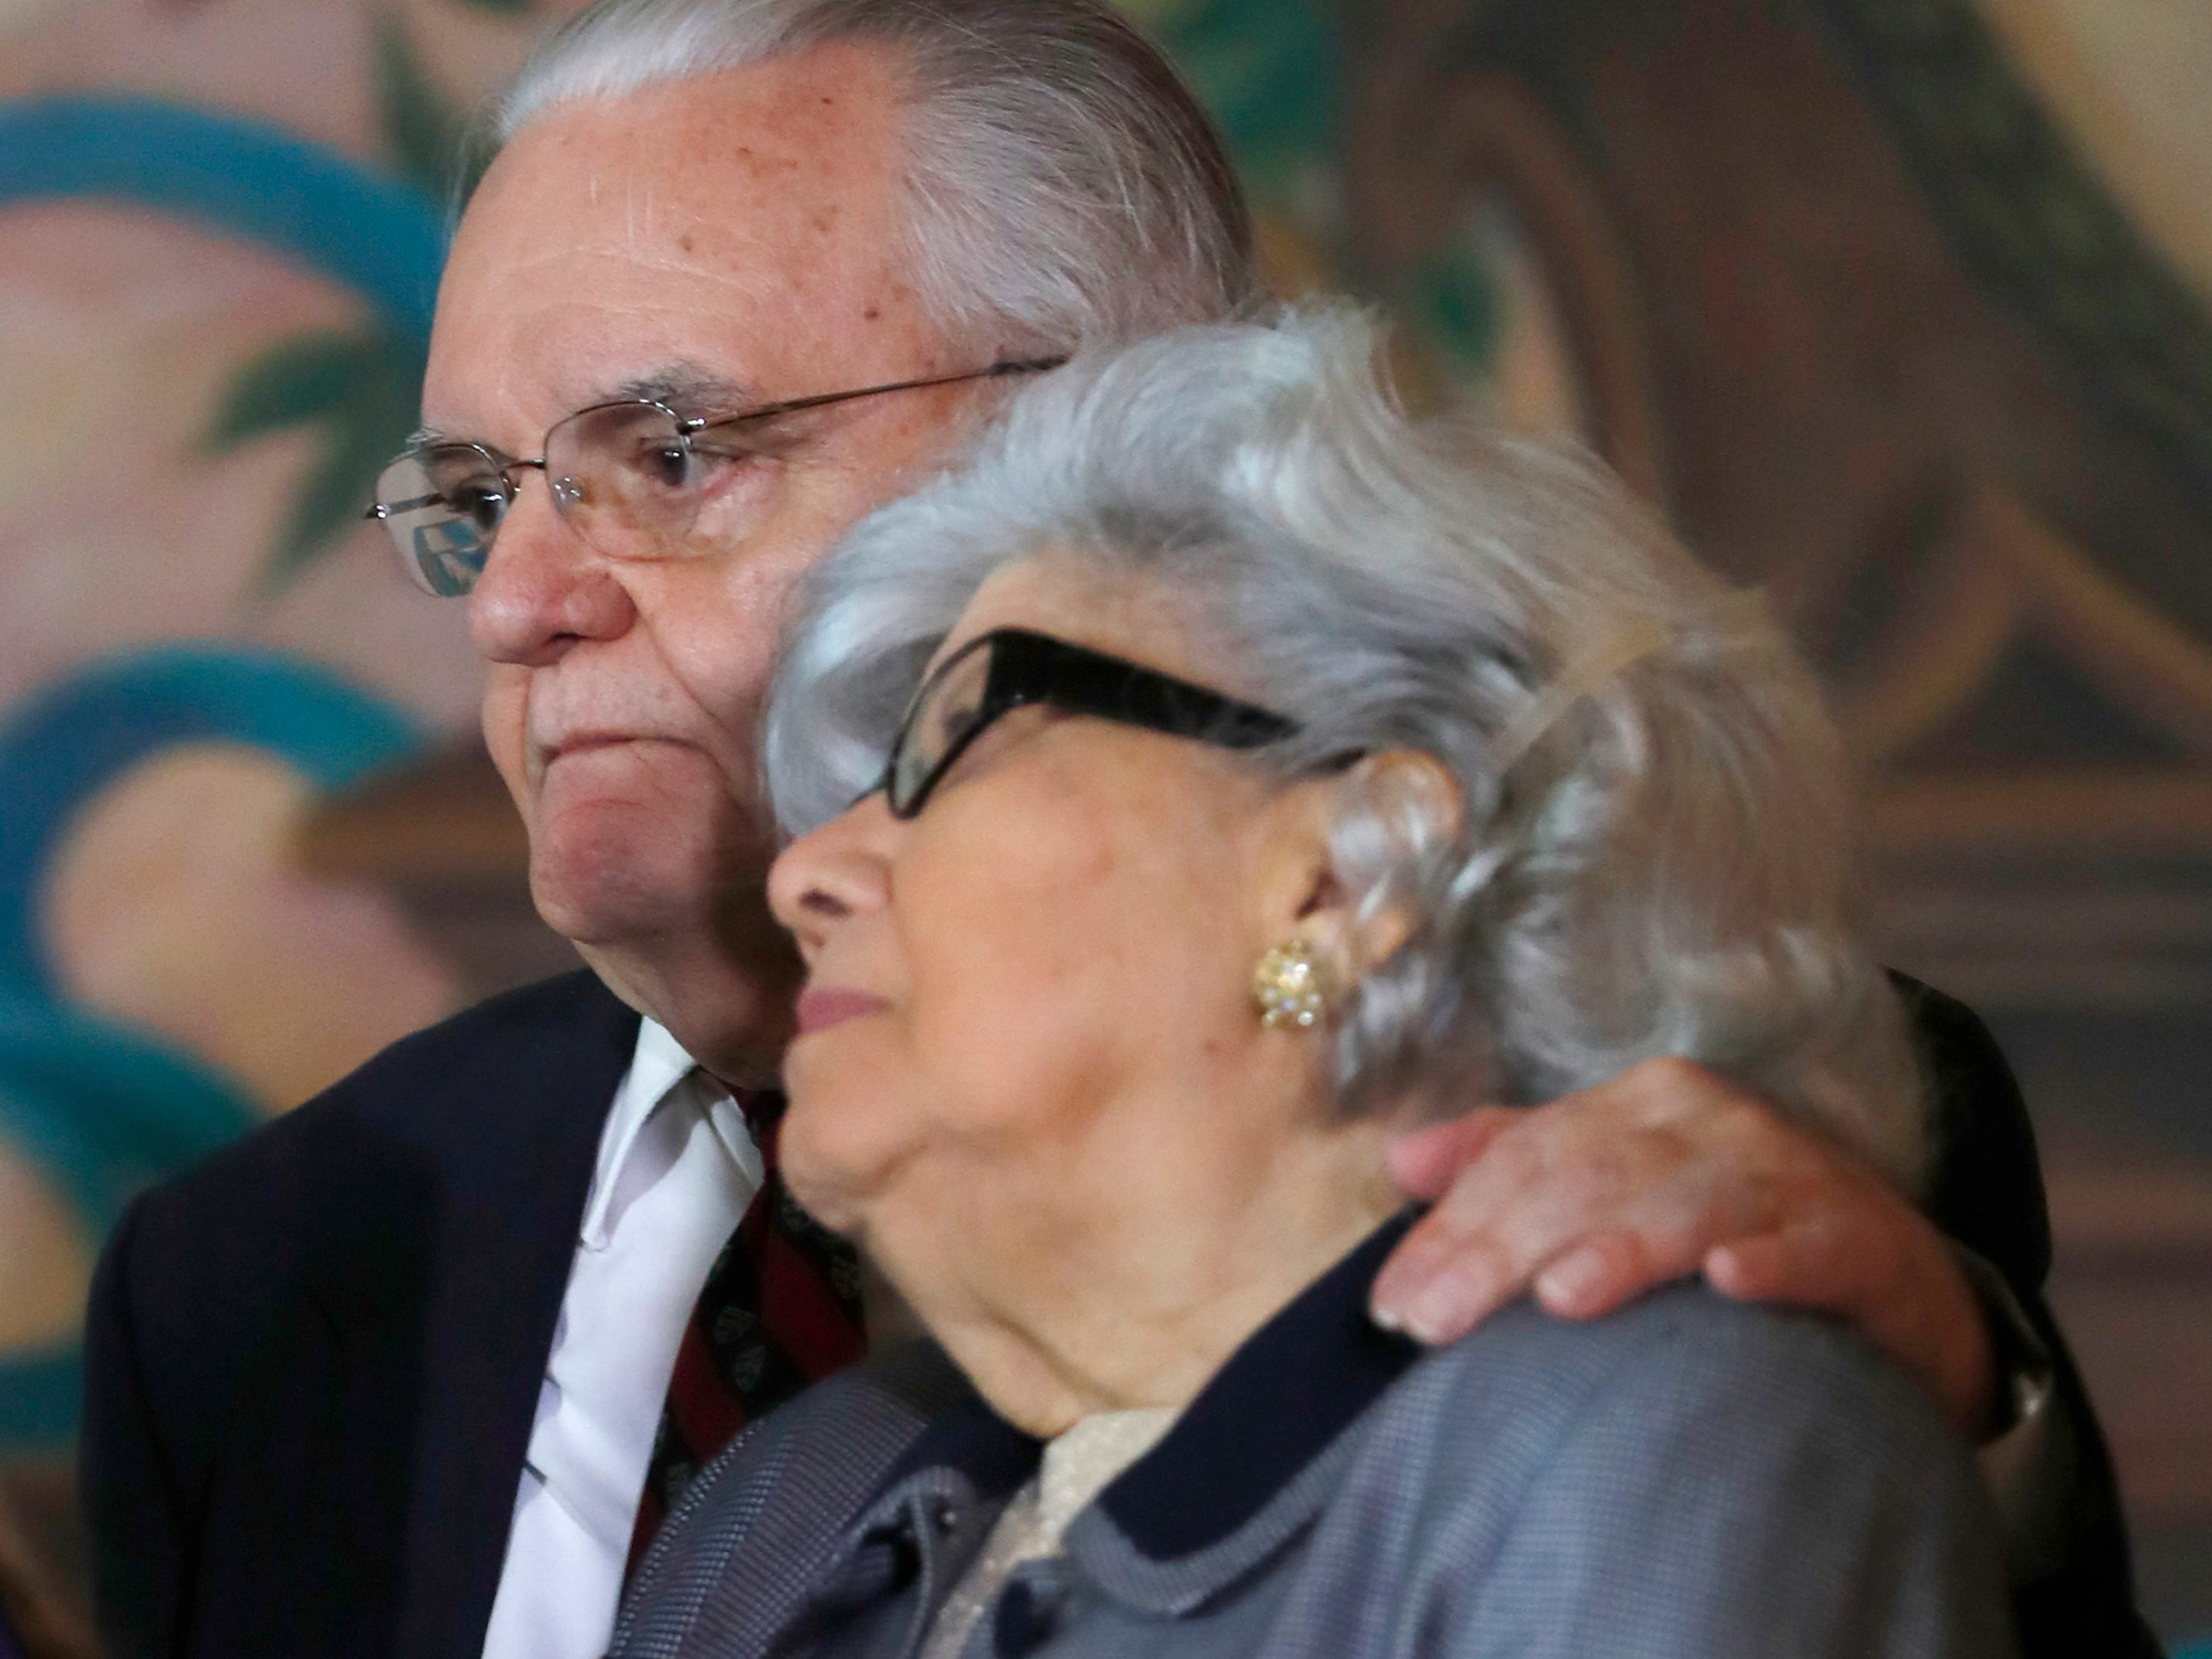 Antonio and Araceli Lagoa, the parents of Barbara Lagoa, Governor Ron DeSantis' pick for the Florida Supreme Court, look on as she speaks after being introduced, Wednesday, Jan. 9, 2019, in Miami. Lagoa, a daughter of Cuban exiles raised in Hialeah, has been a judge on the 3rd District Court of Appeal in Miami for the past 12 years.